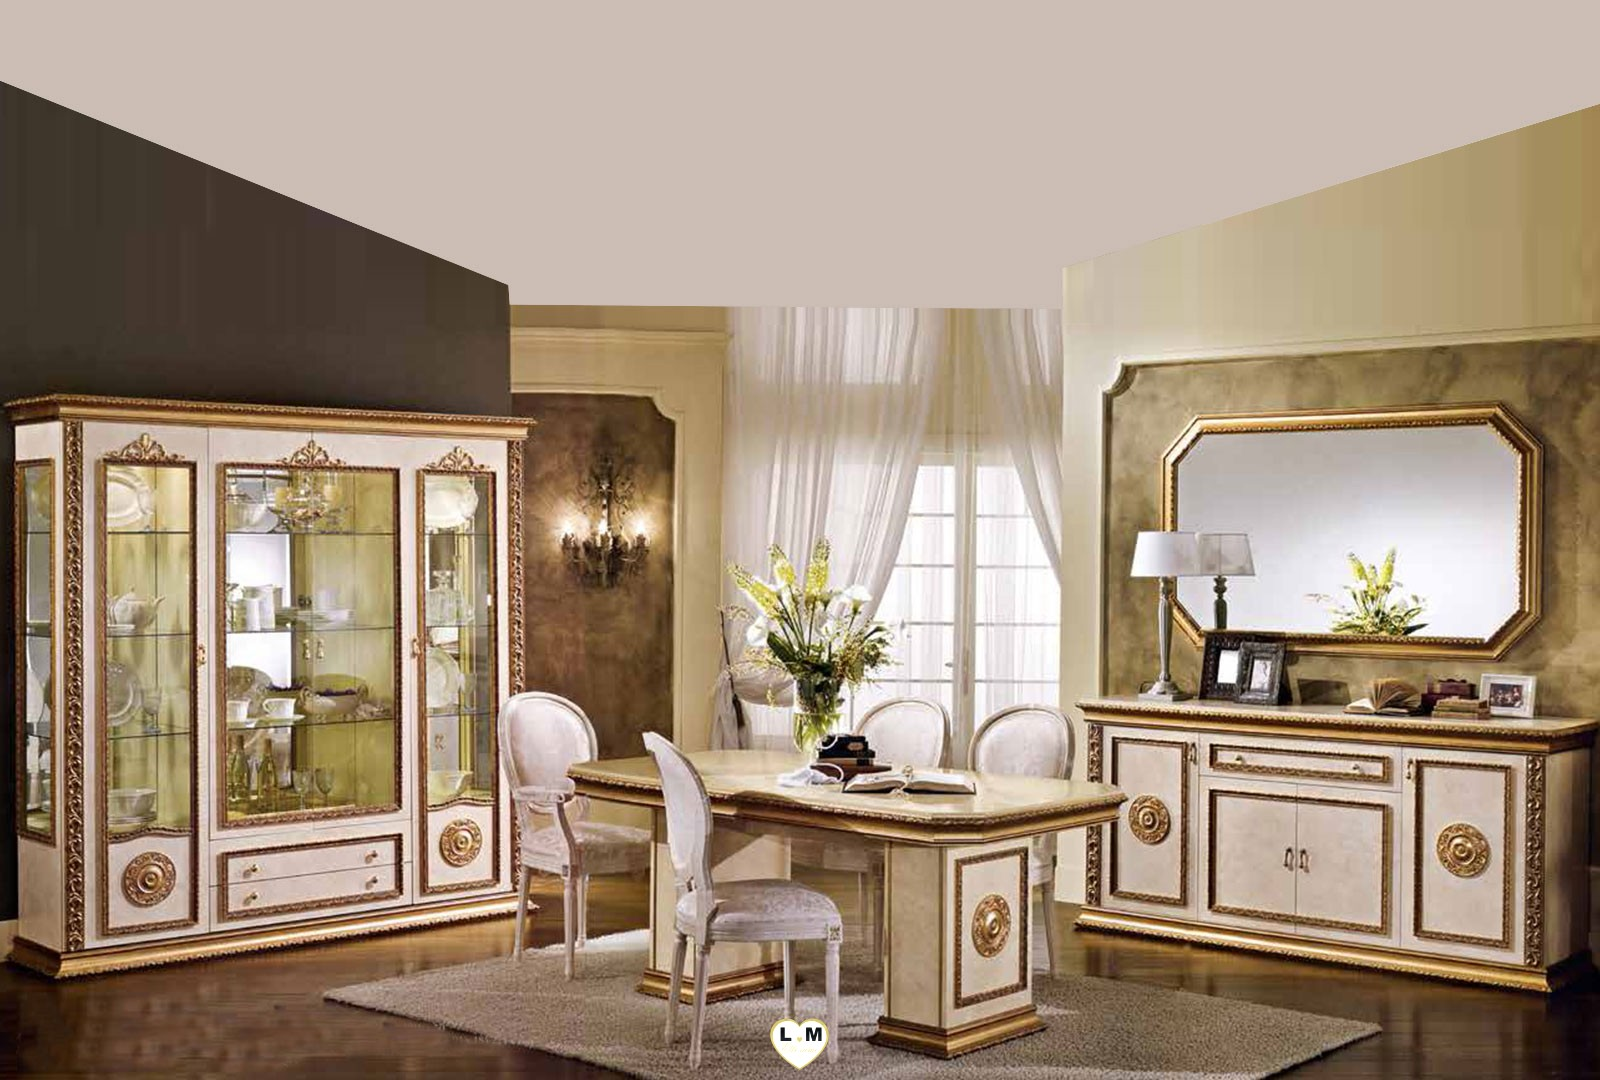 ensemble salon salle a manger collection et indogate salle of ensemble salon et salle a manger. Black Bedroom Furniture Sets. Home Design Ideas